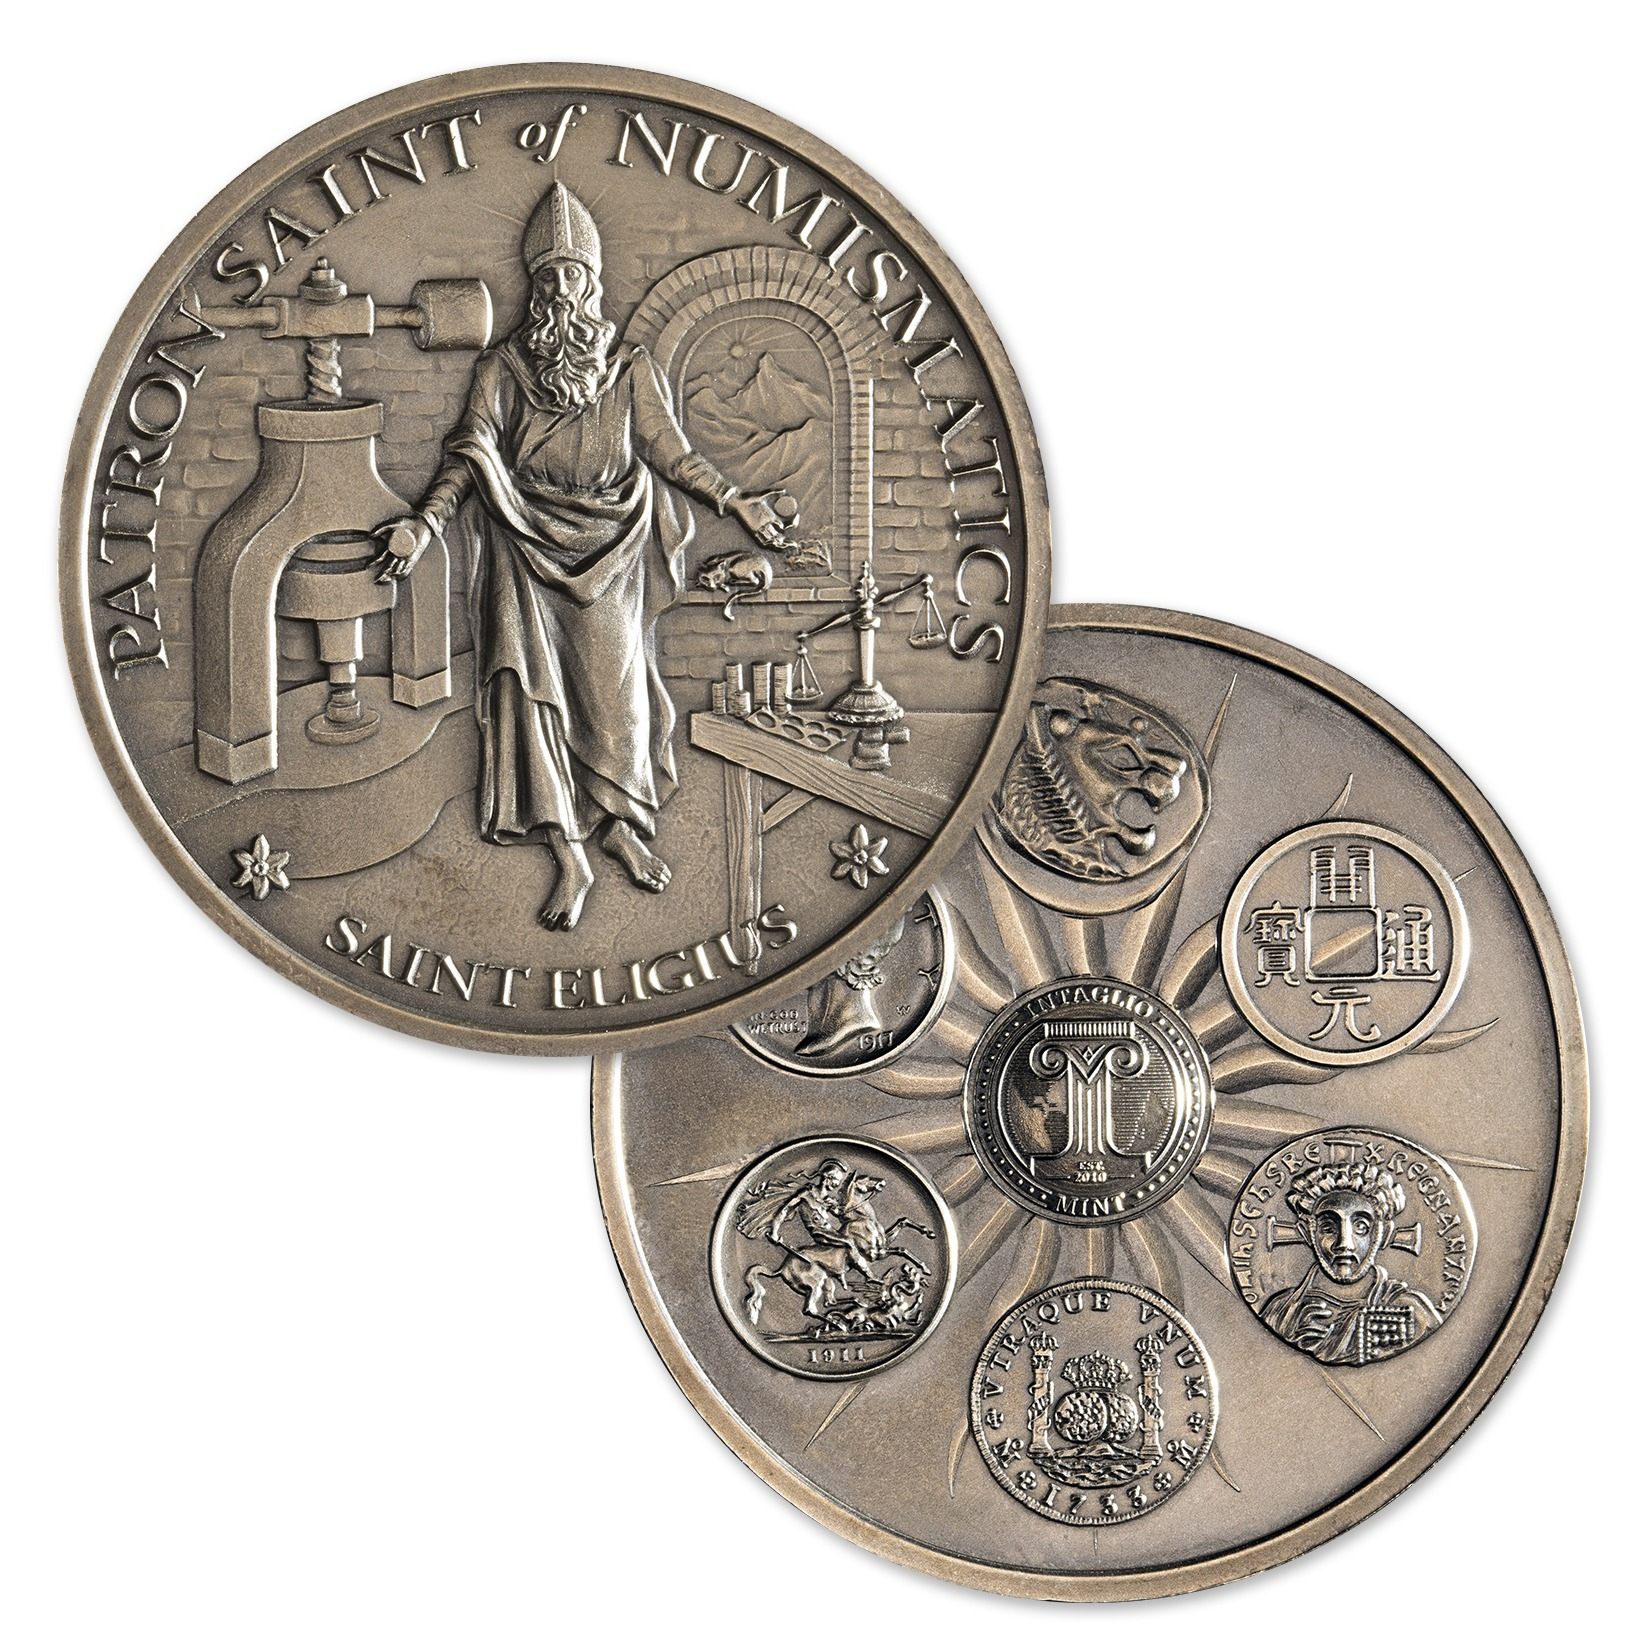 SAINT ELIGIUS – 5 TROY OUNCE – 50MM – LIMITED MINTAGE: 500 (ANTIQUED)